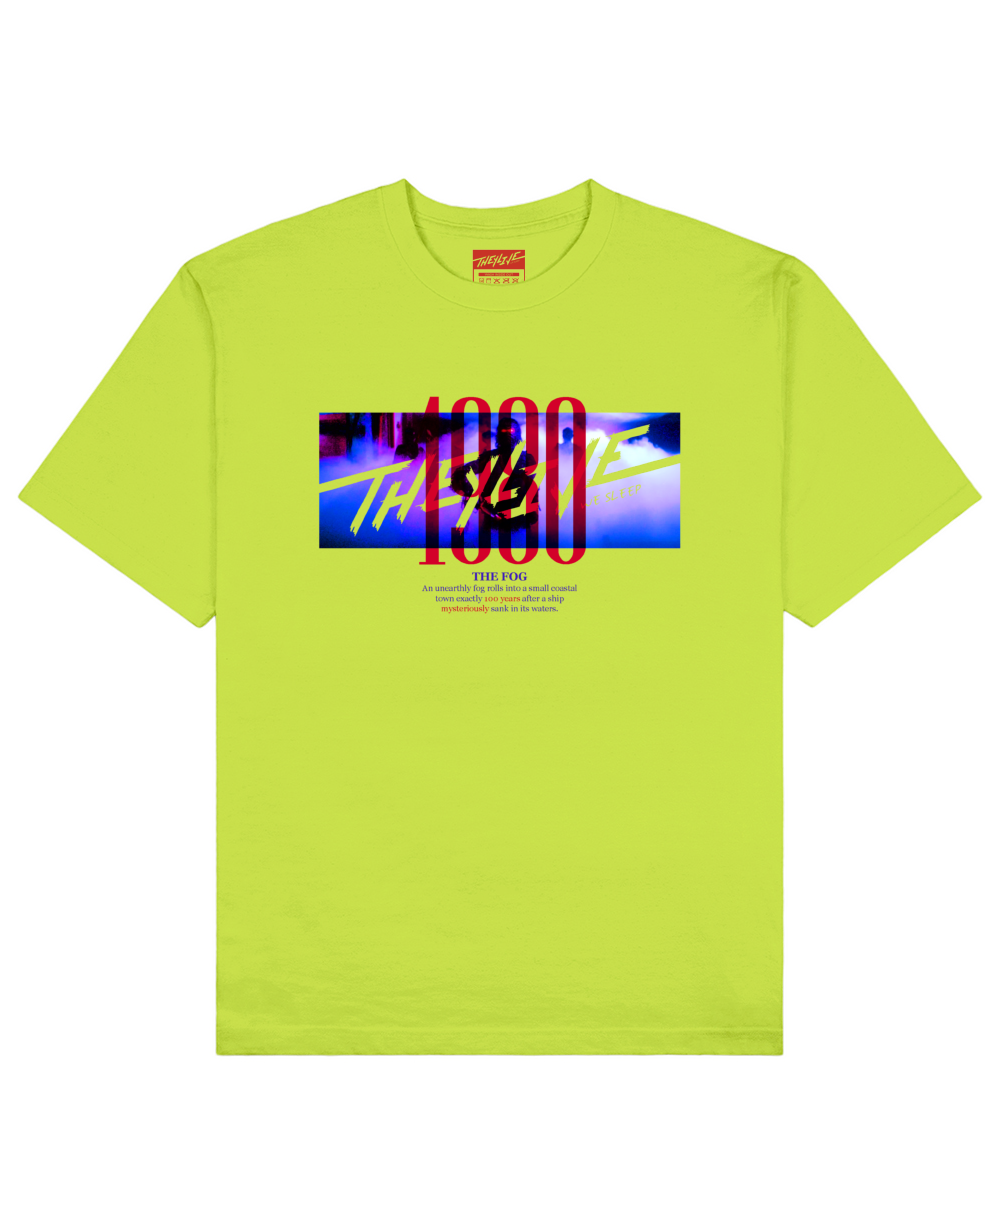 The Fog Print T-Shirt in Light Green - T-Shirts - THEYLIVE - BRANMA